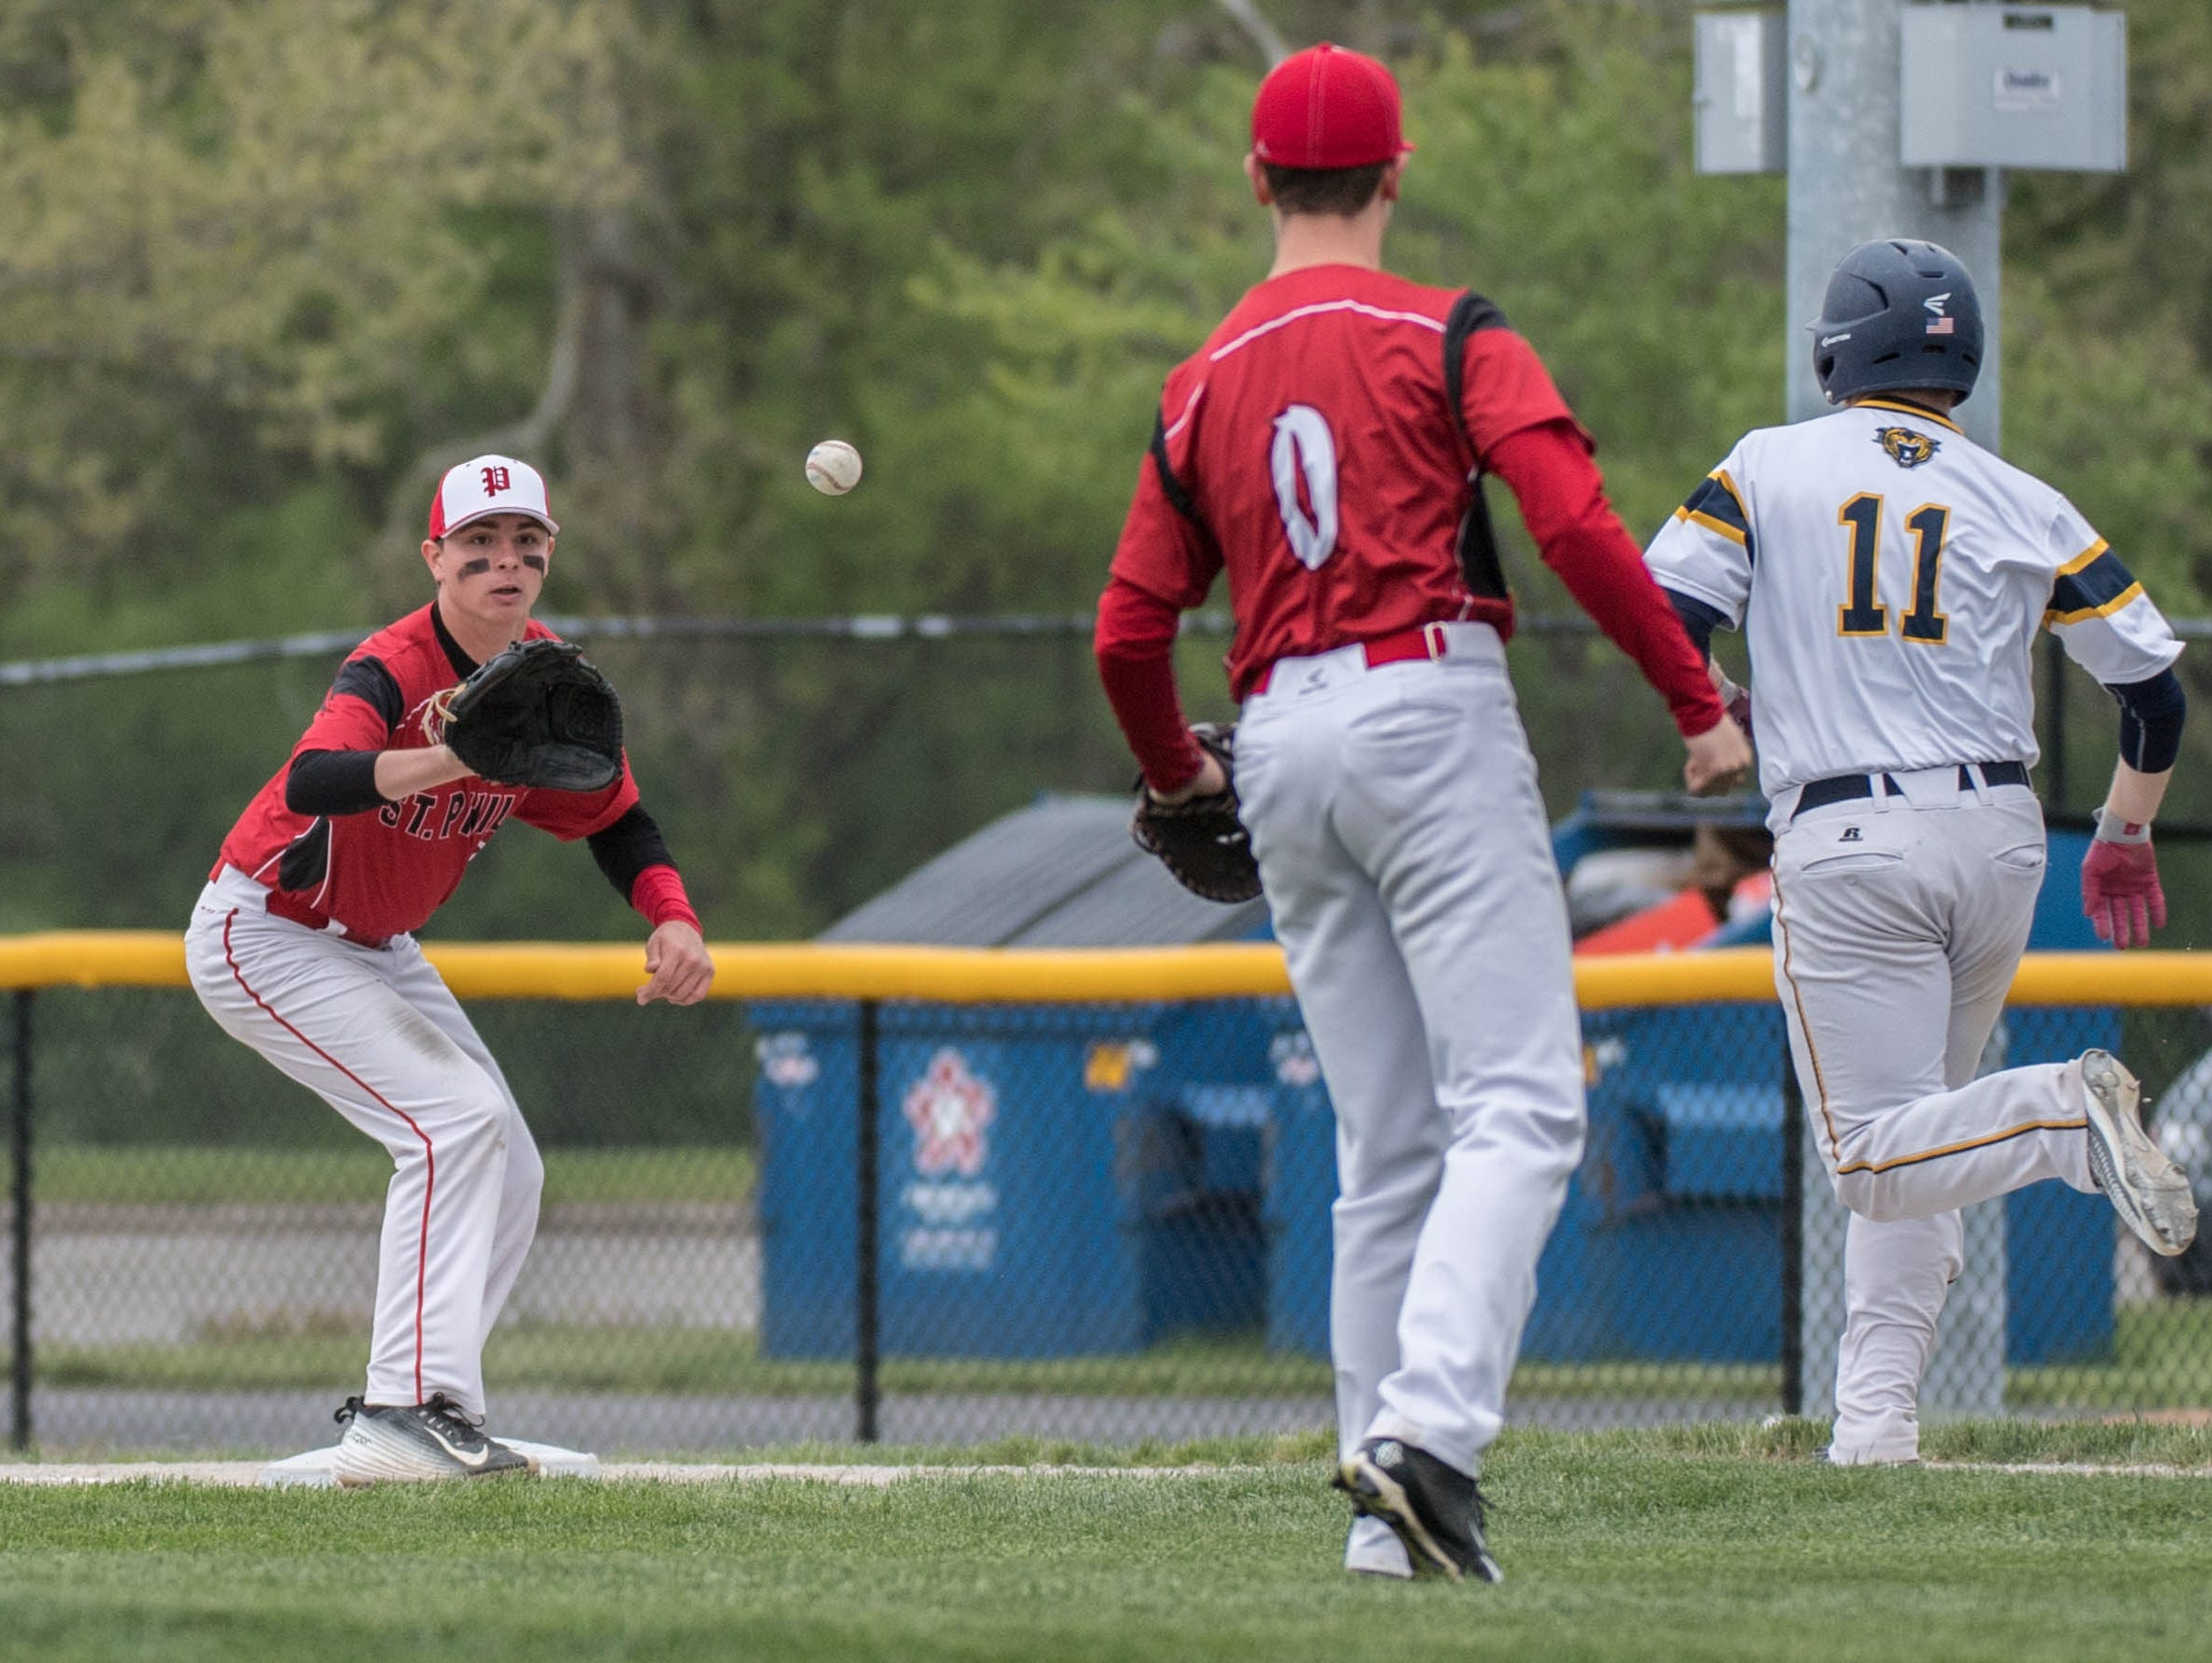 St. Philips's Drew Lantinga gets the throw from Ian Mullis (0) to get Battle Creek Central's Dallas Gillum (11) out at first during the Annual Play 4 May tribute game in honor Tim May at C.O. Brown Stadium on Monday.